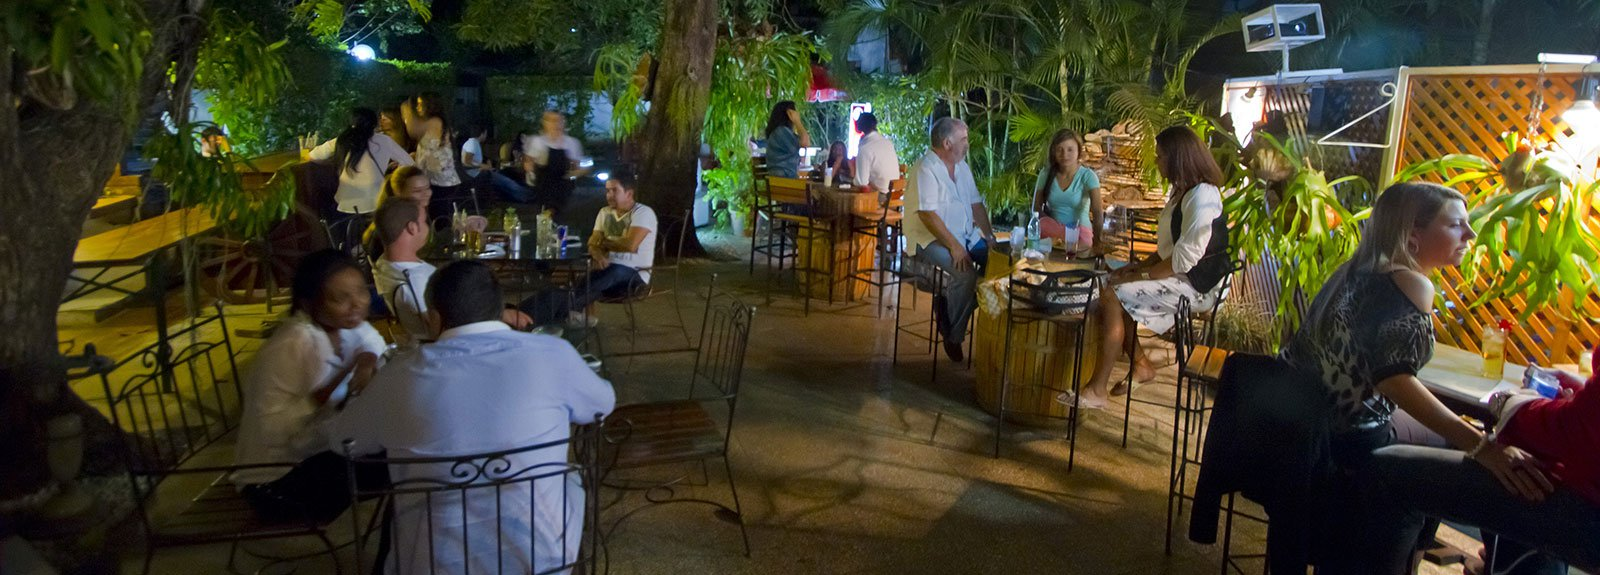 People at Espacios bar outdoor, iron and wood chairs and trees